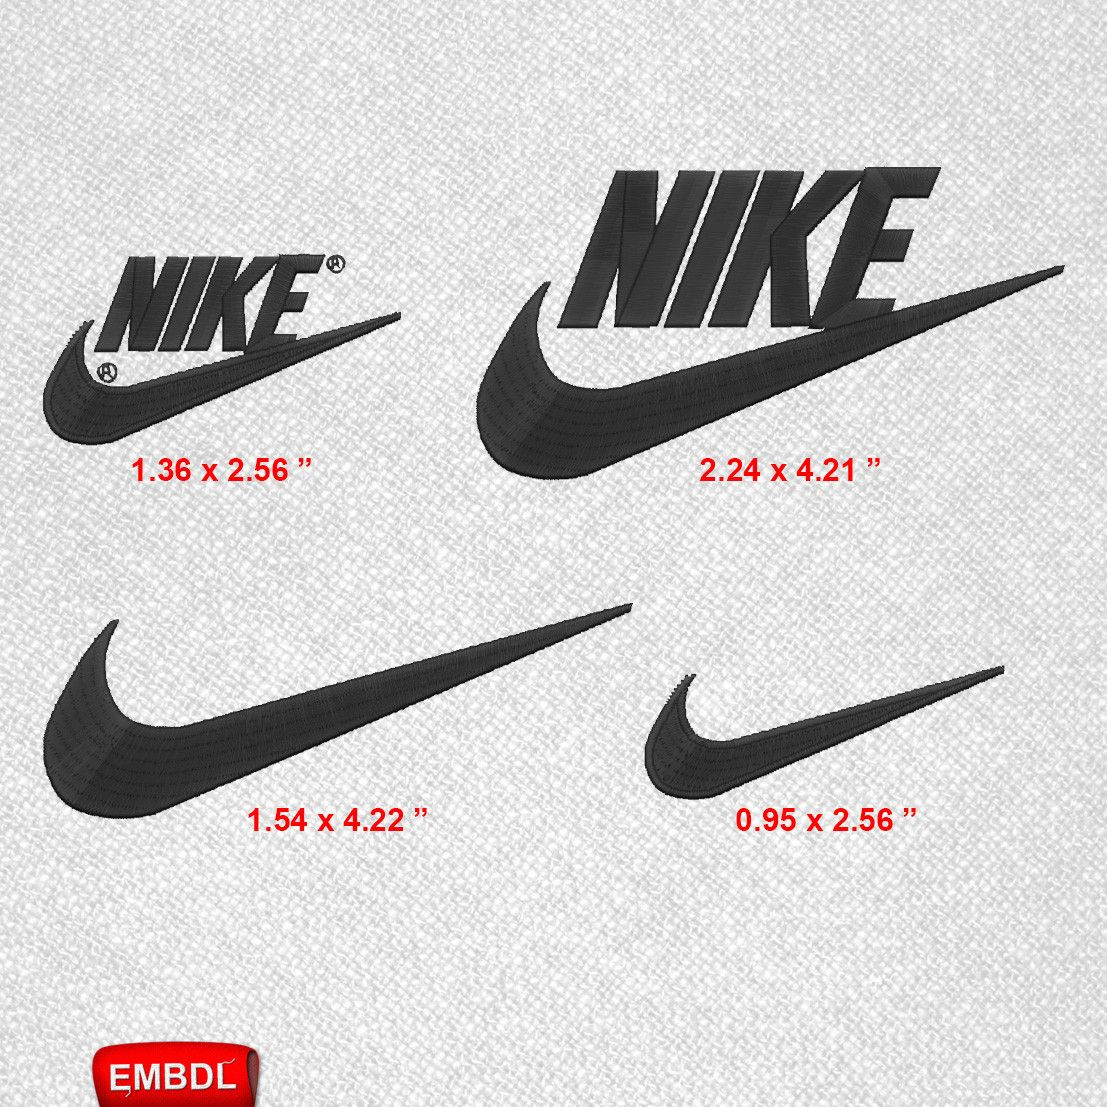 Nike Logo Pack- Embroidery Design Instant Download #EmbroideryDownloadCom